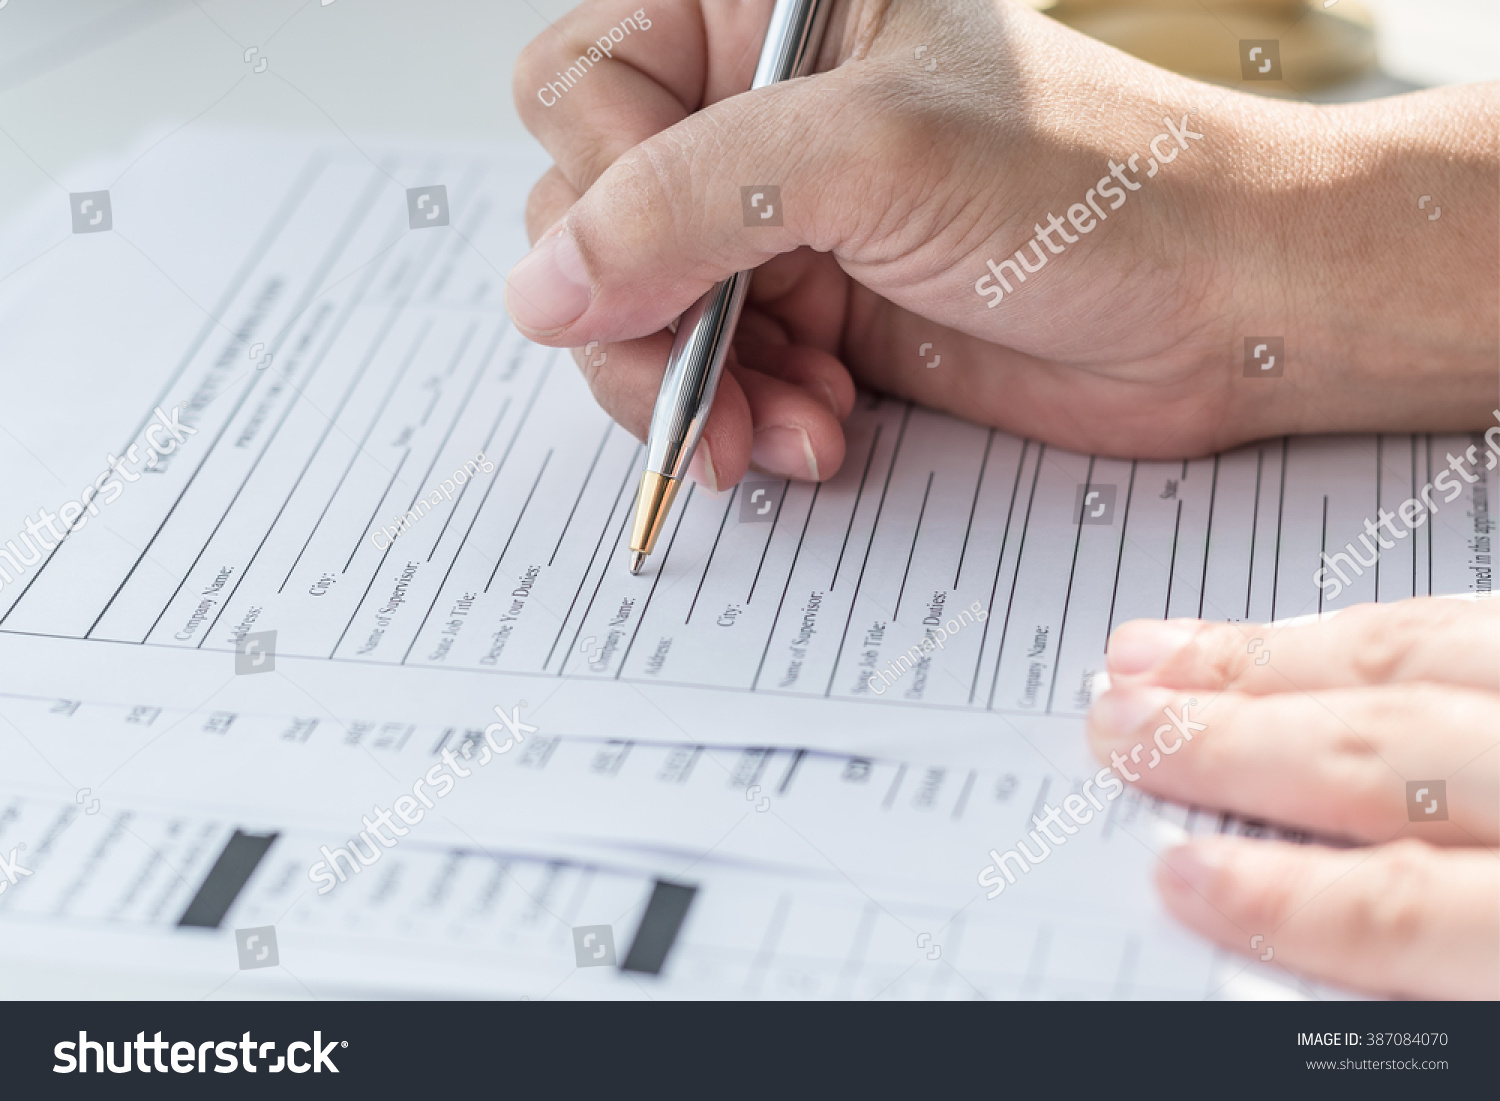 Persons Hand Hold Ballpoint Pen Writing Photo 387084070 – Blank Mortgage Form